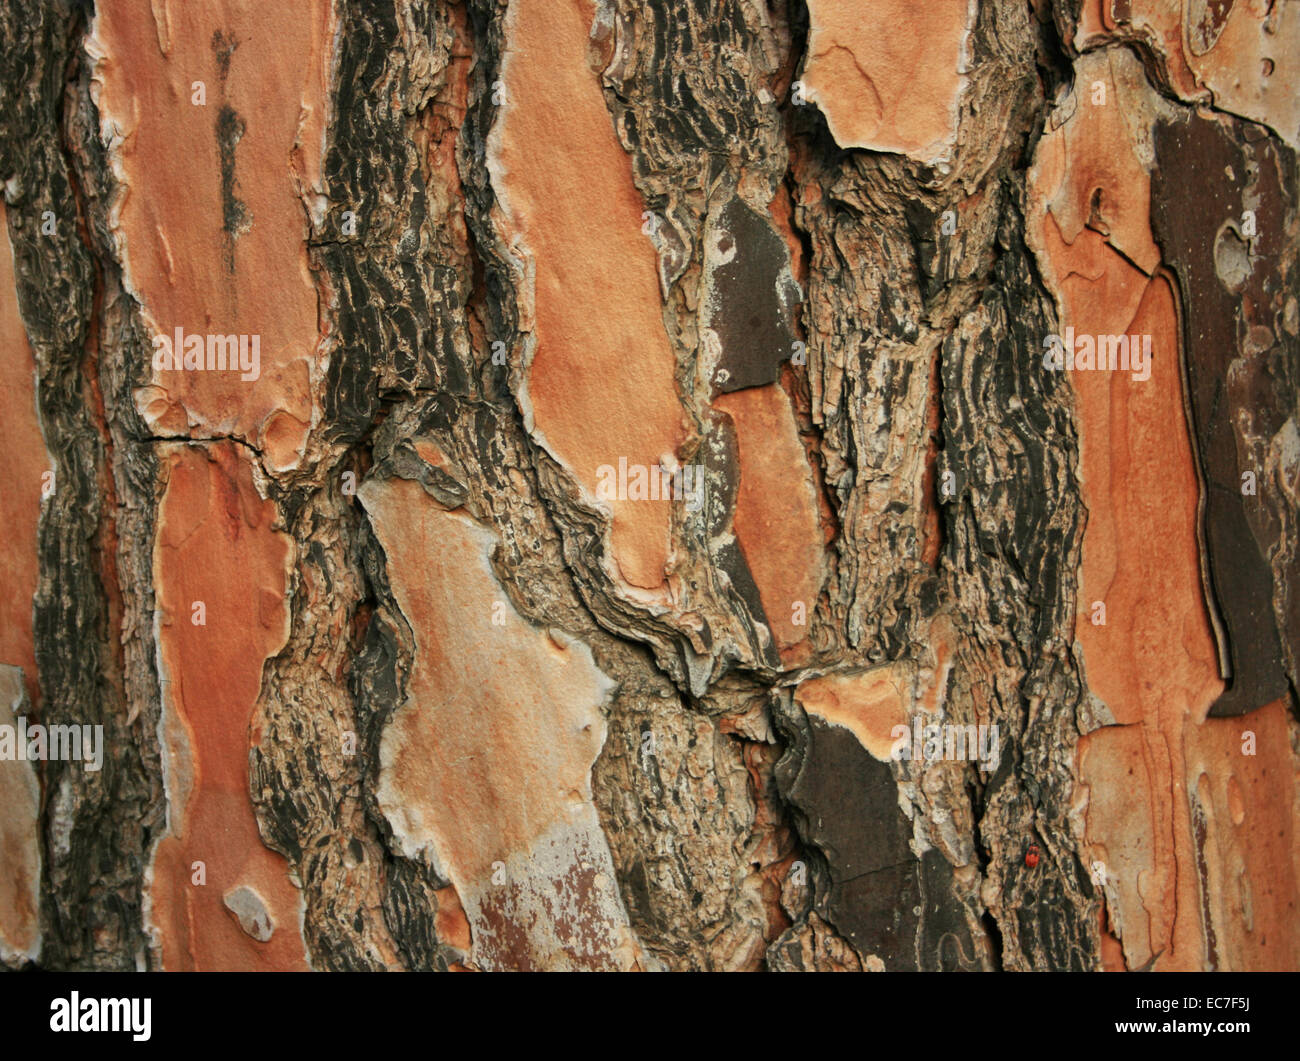 Old Pine Tree Bark texture,Close Up - Stock Image